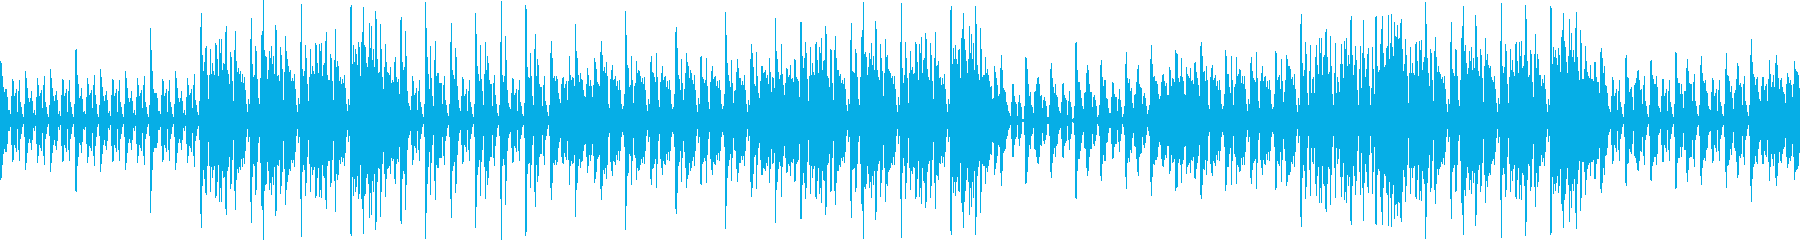 FUNK JAZZ track's reproduced waveform